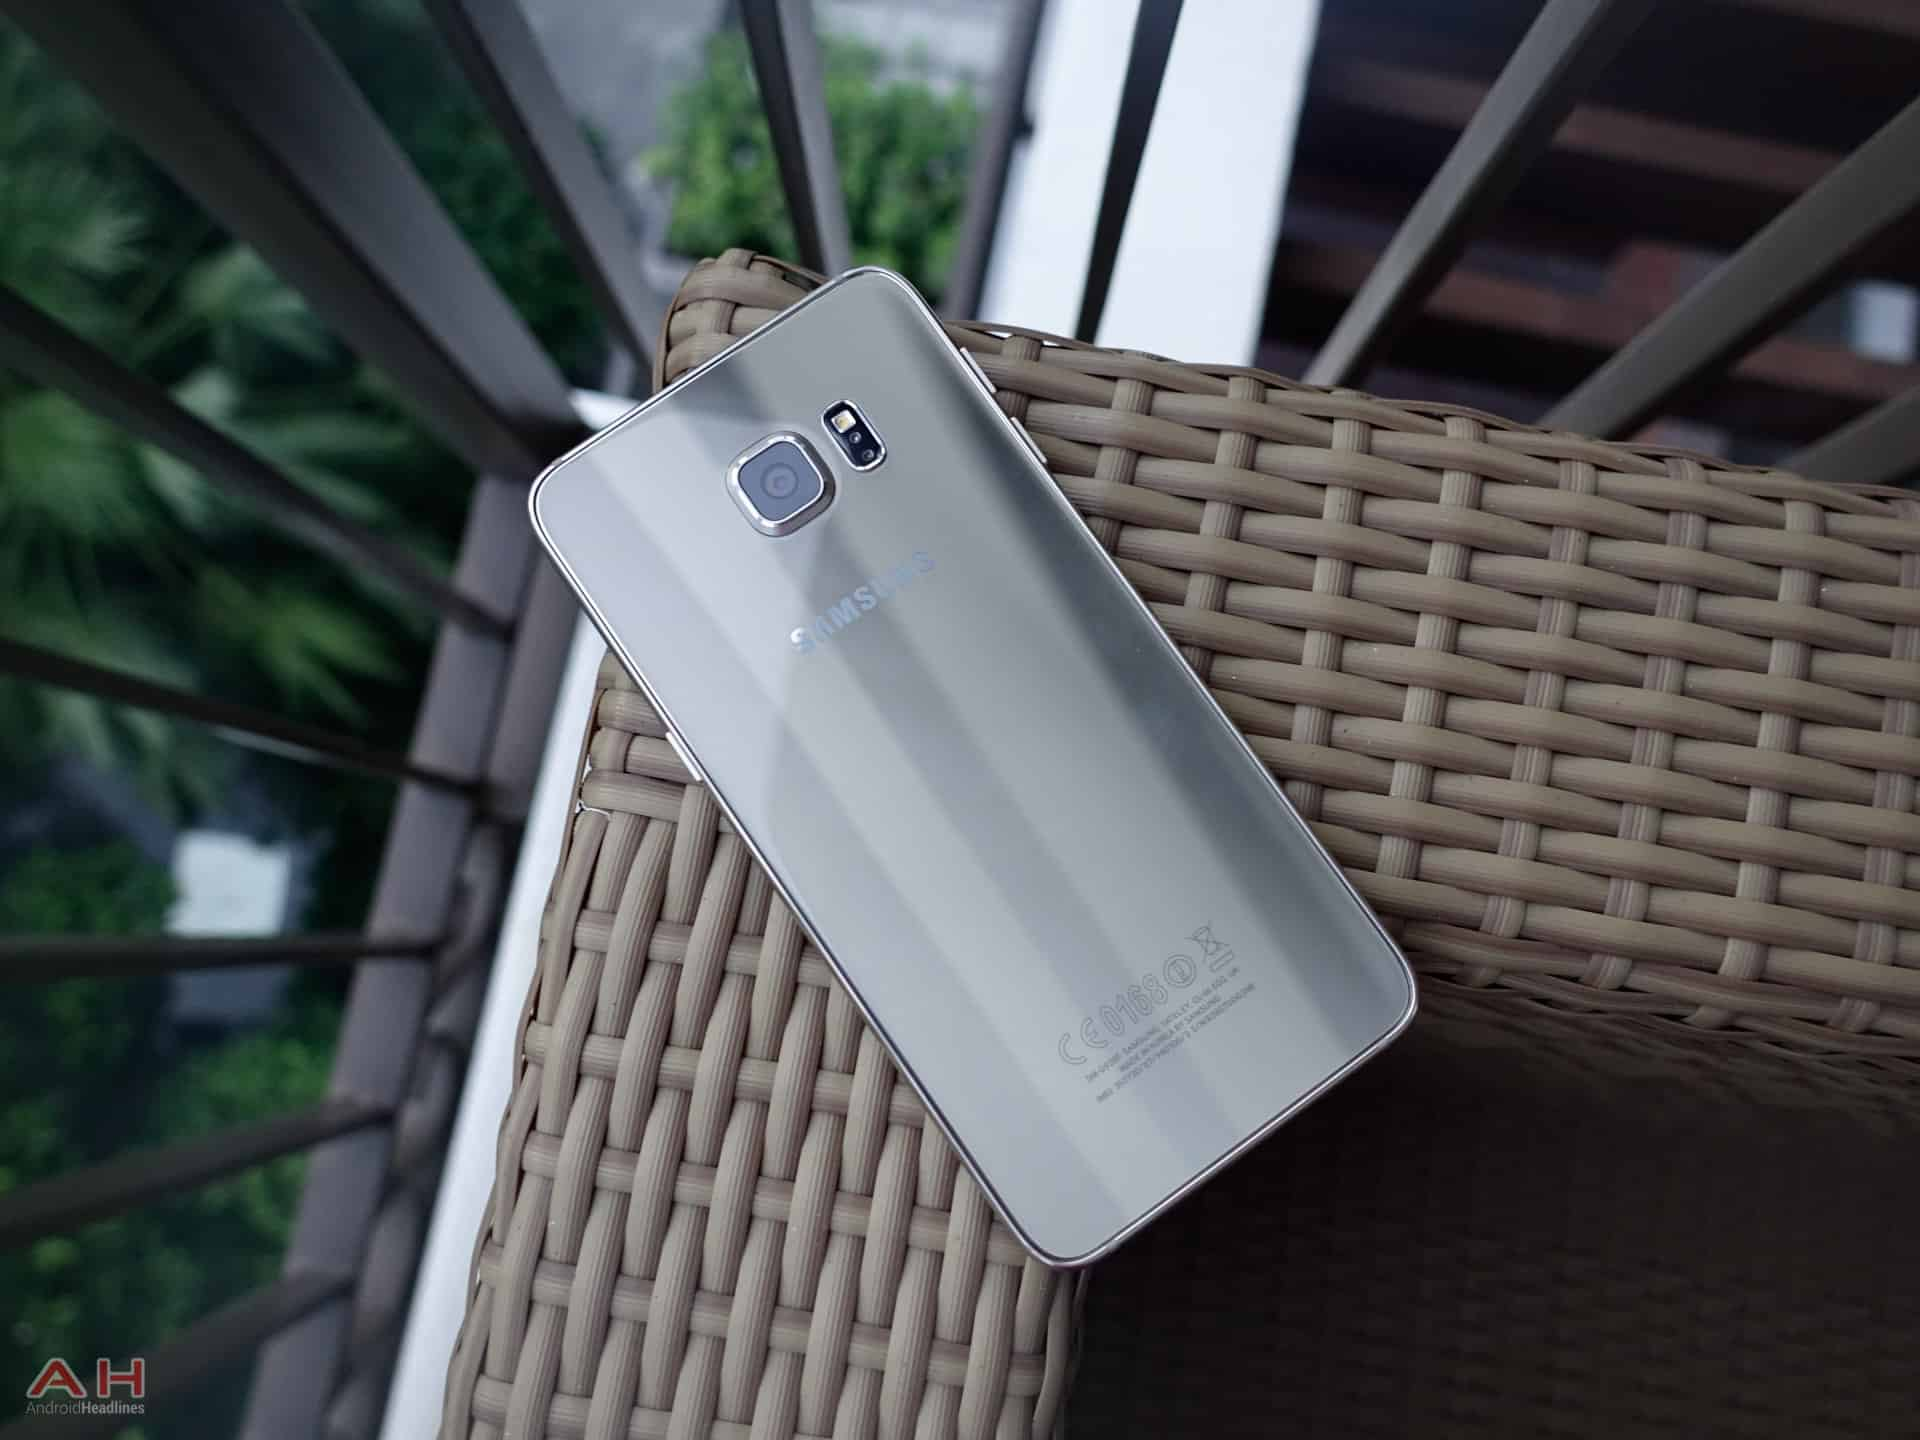 Samsung-Galaxy-S6-Edge-Plus-AH-4-2